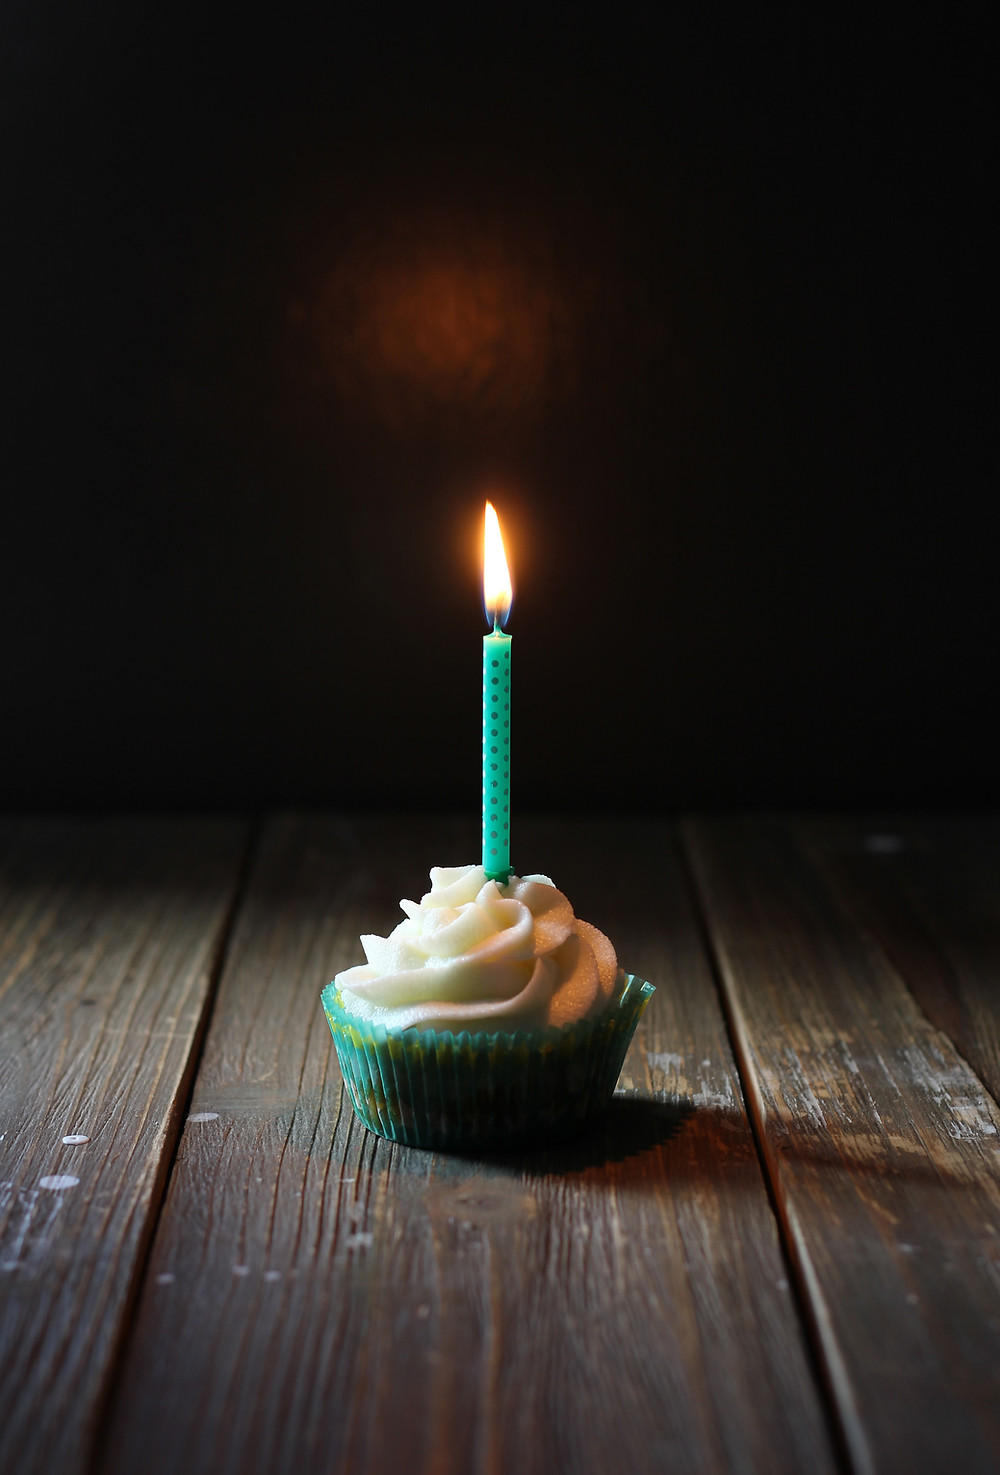 picture of a single candle on a cupcake